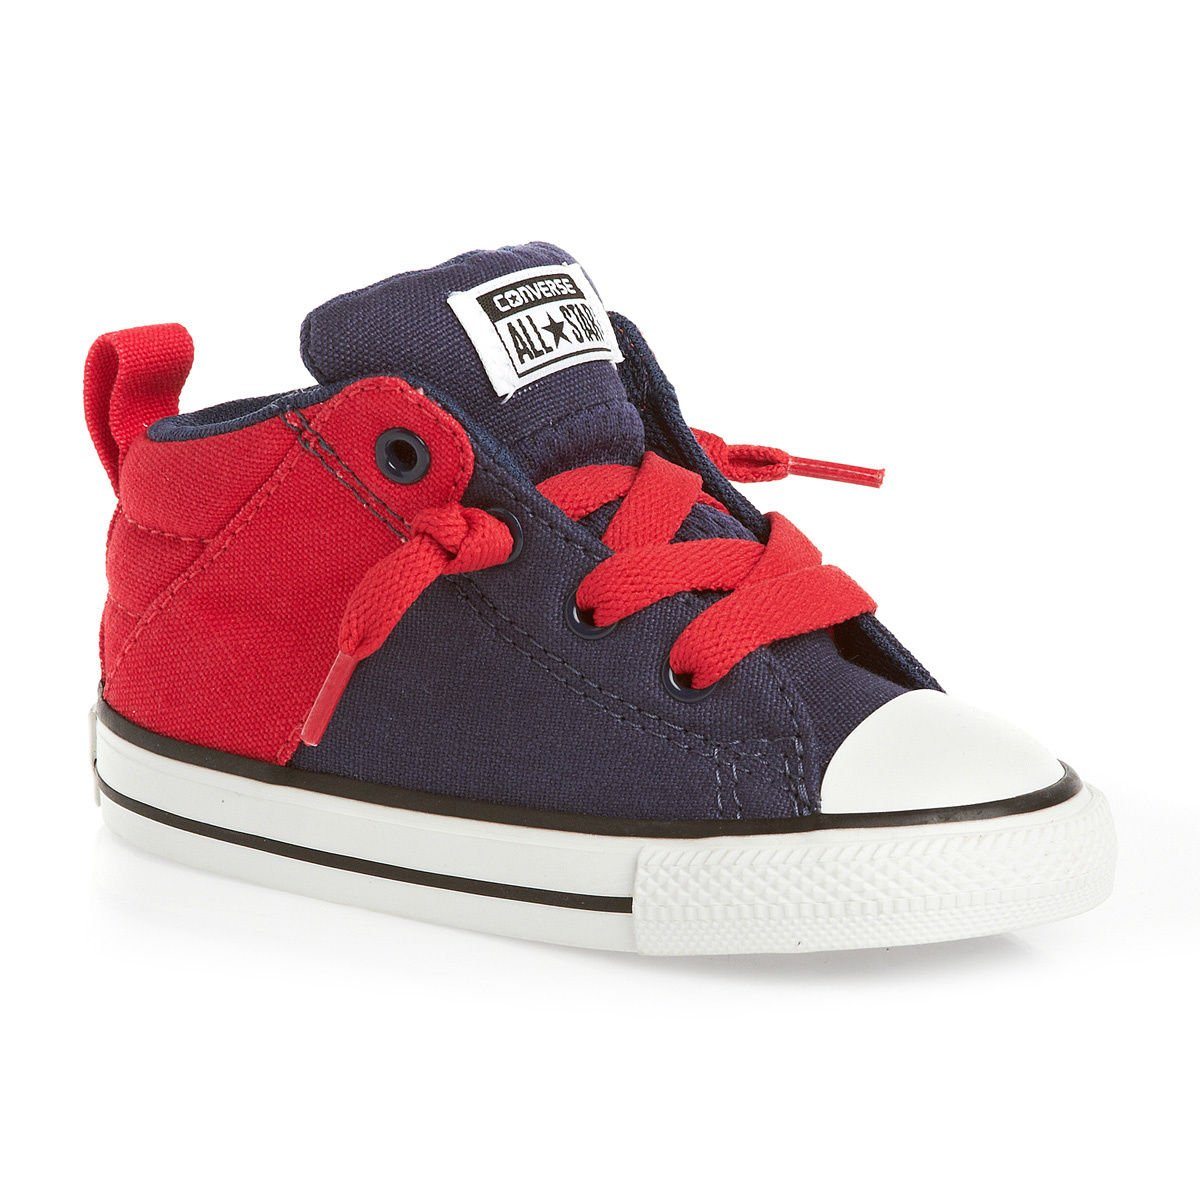 Converse Kids Chuck Taylor All Star Axel Mid Leather Infant//Toddler